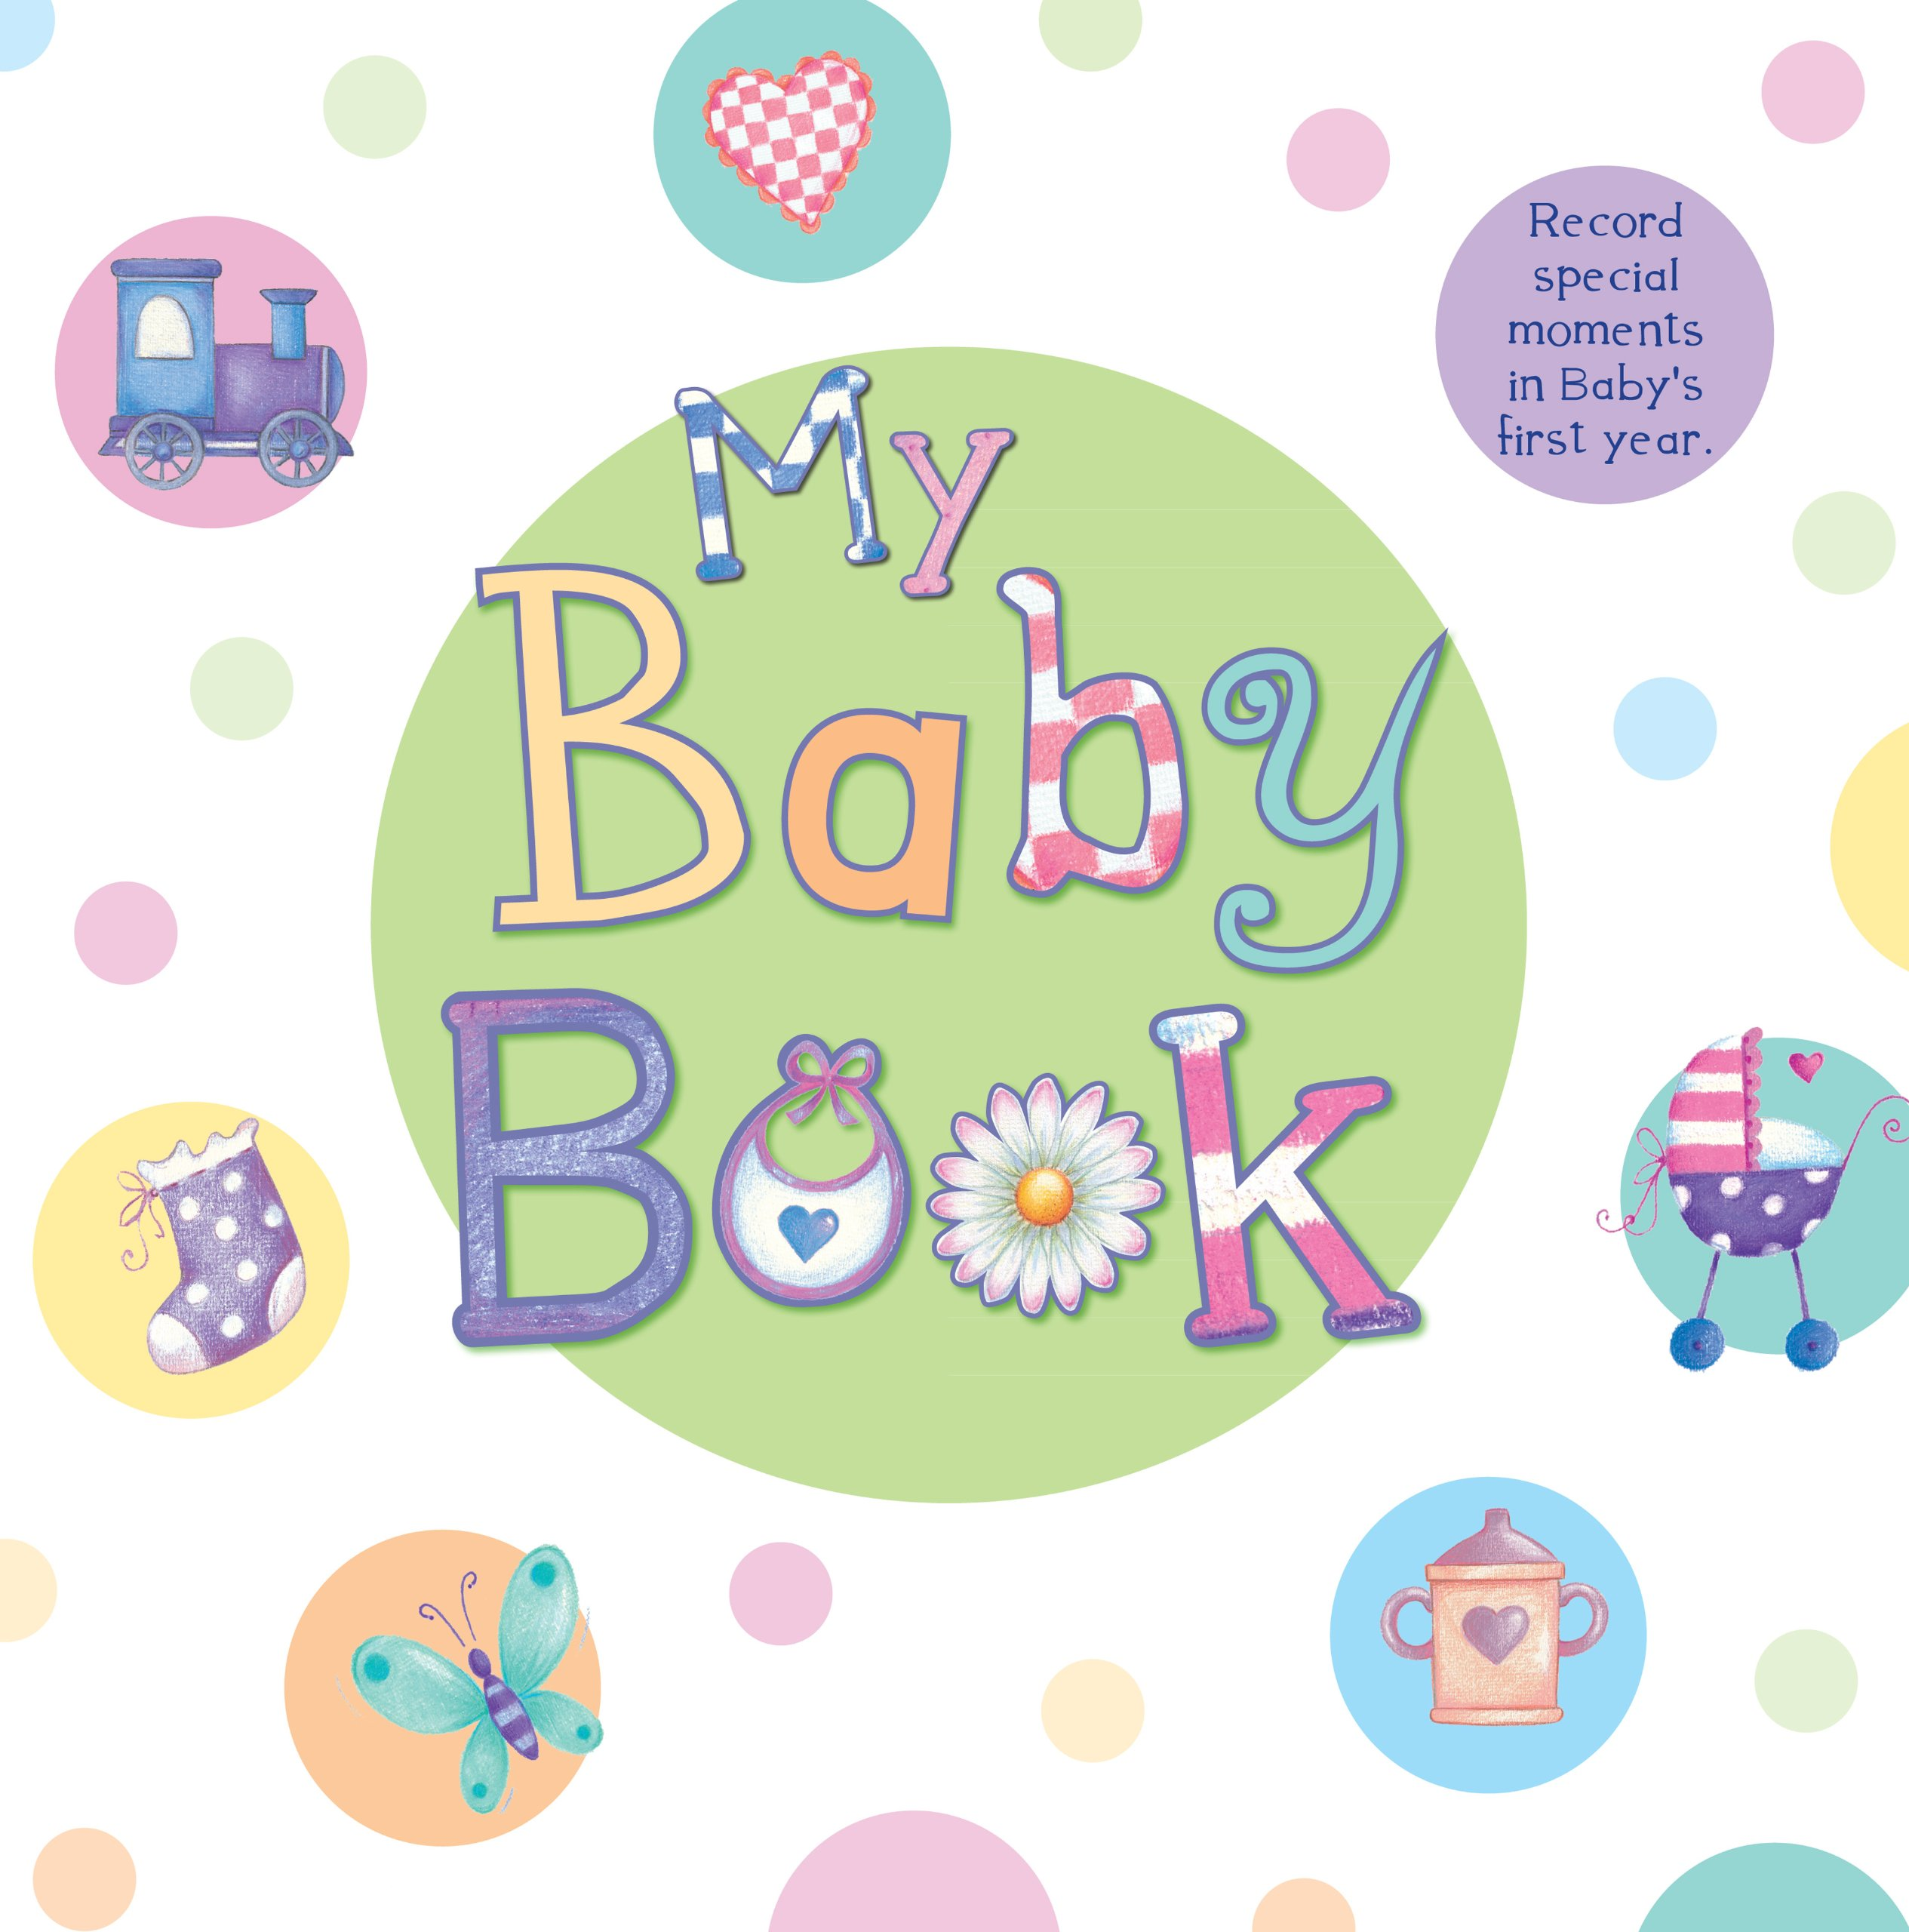 Baby book clipart 6 » Clipart Station.